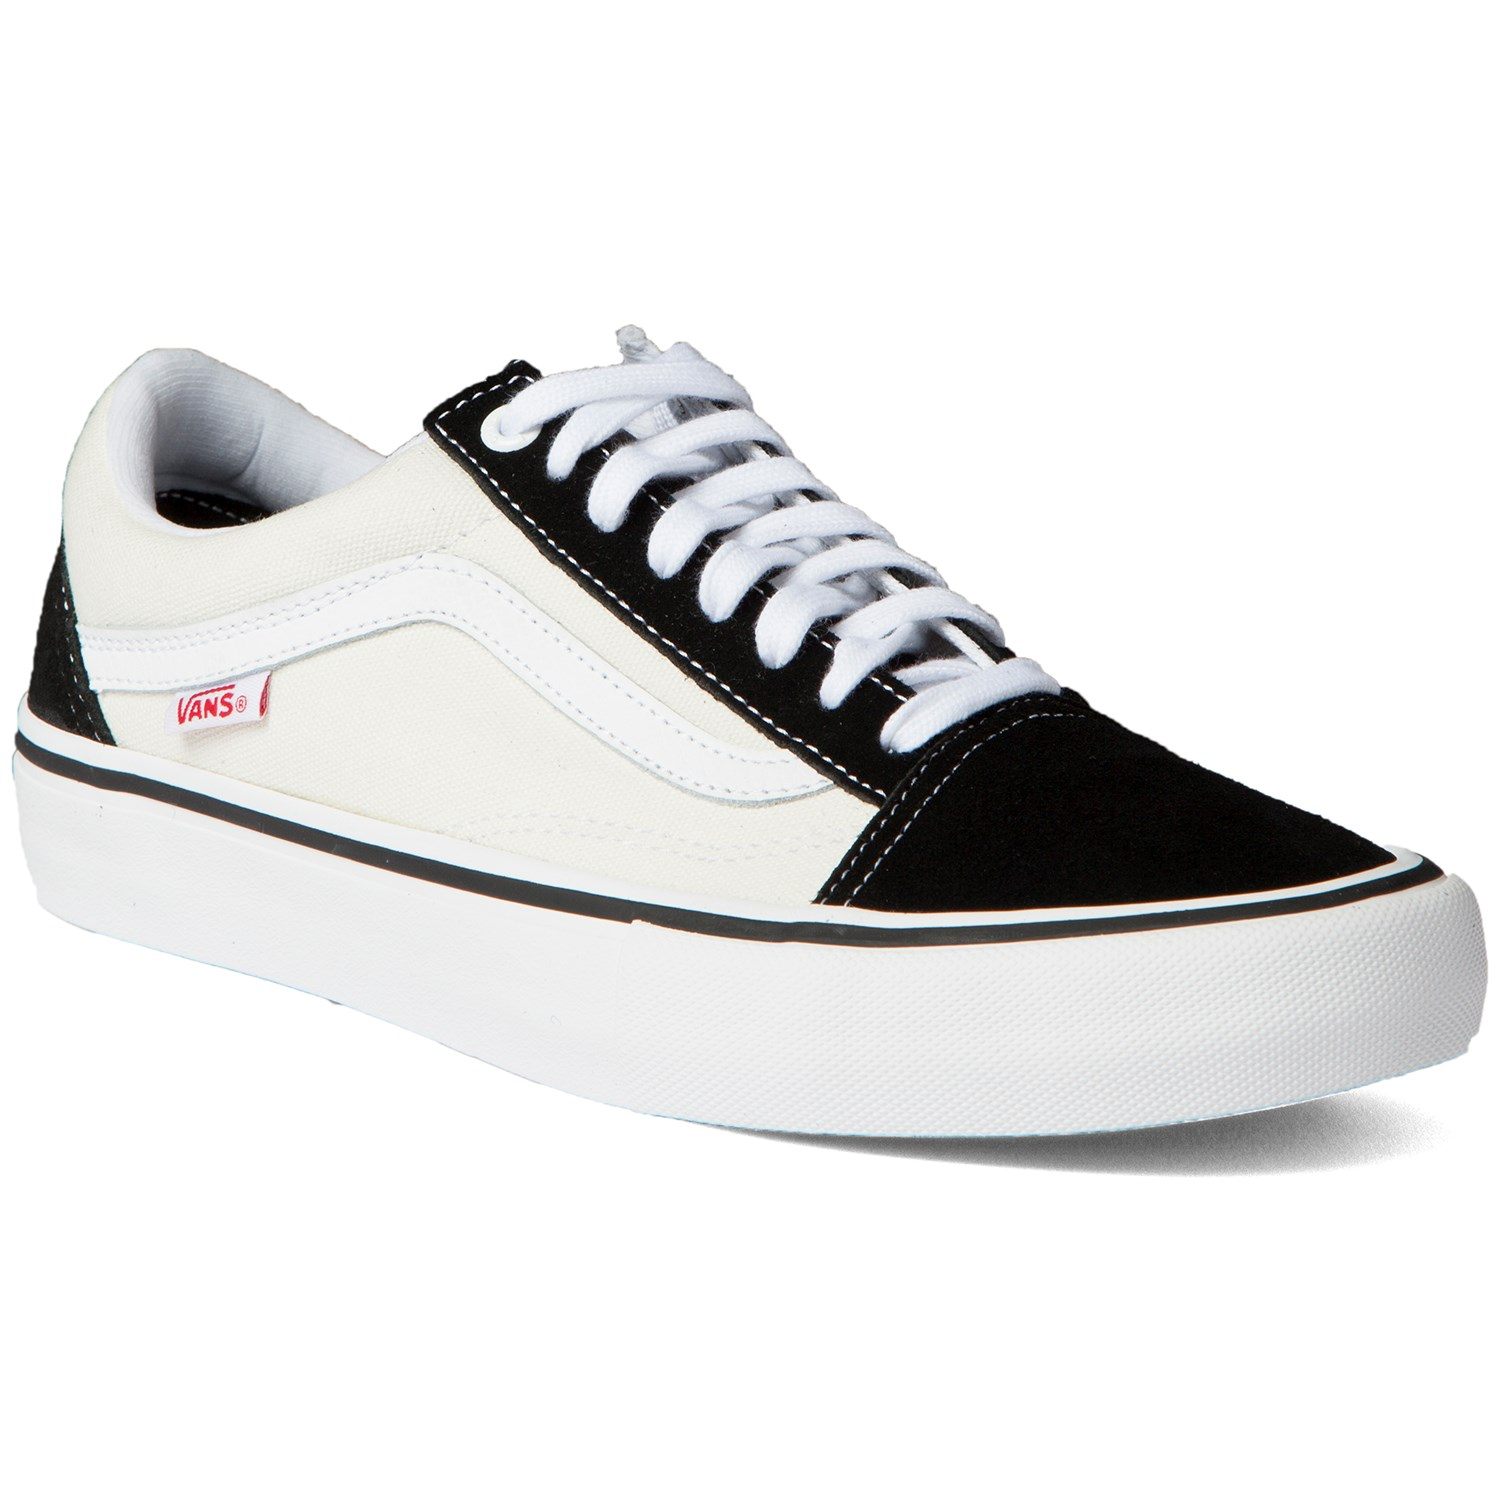 vans old skool pro skate shoes mens style guru fashion glitz glamour style unplugged. Black Bedroom Furniture Sets. Home Design Ideas